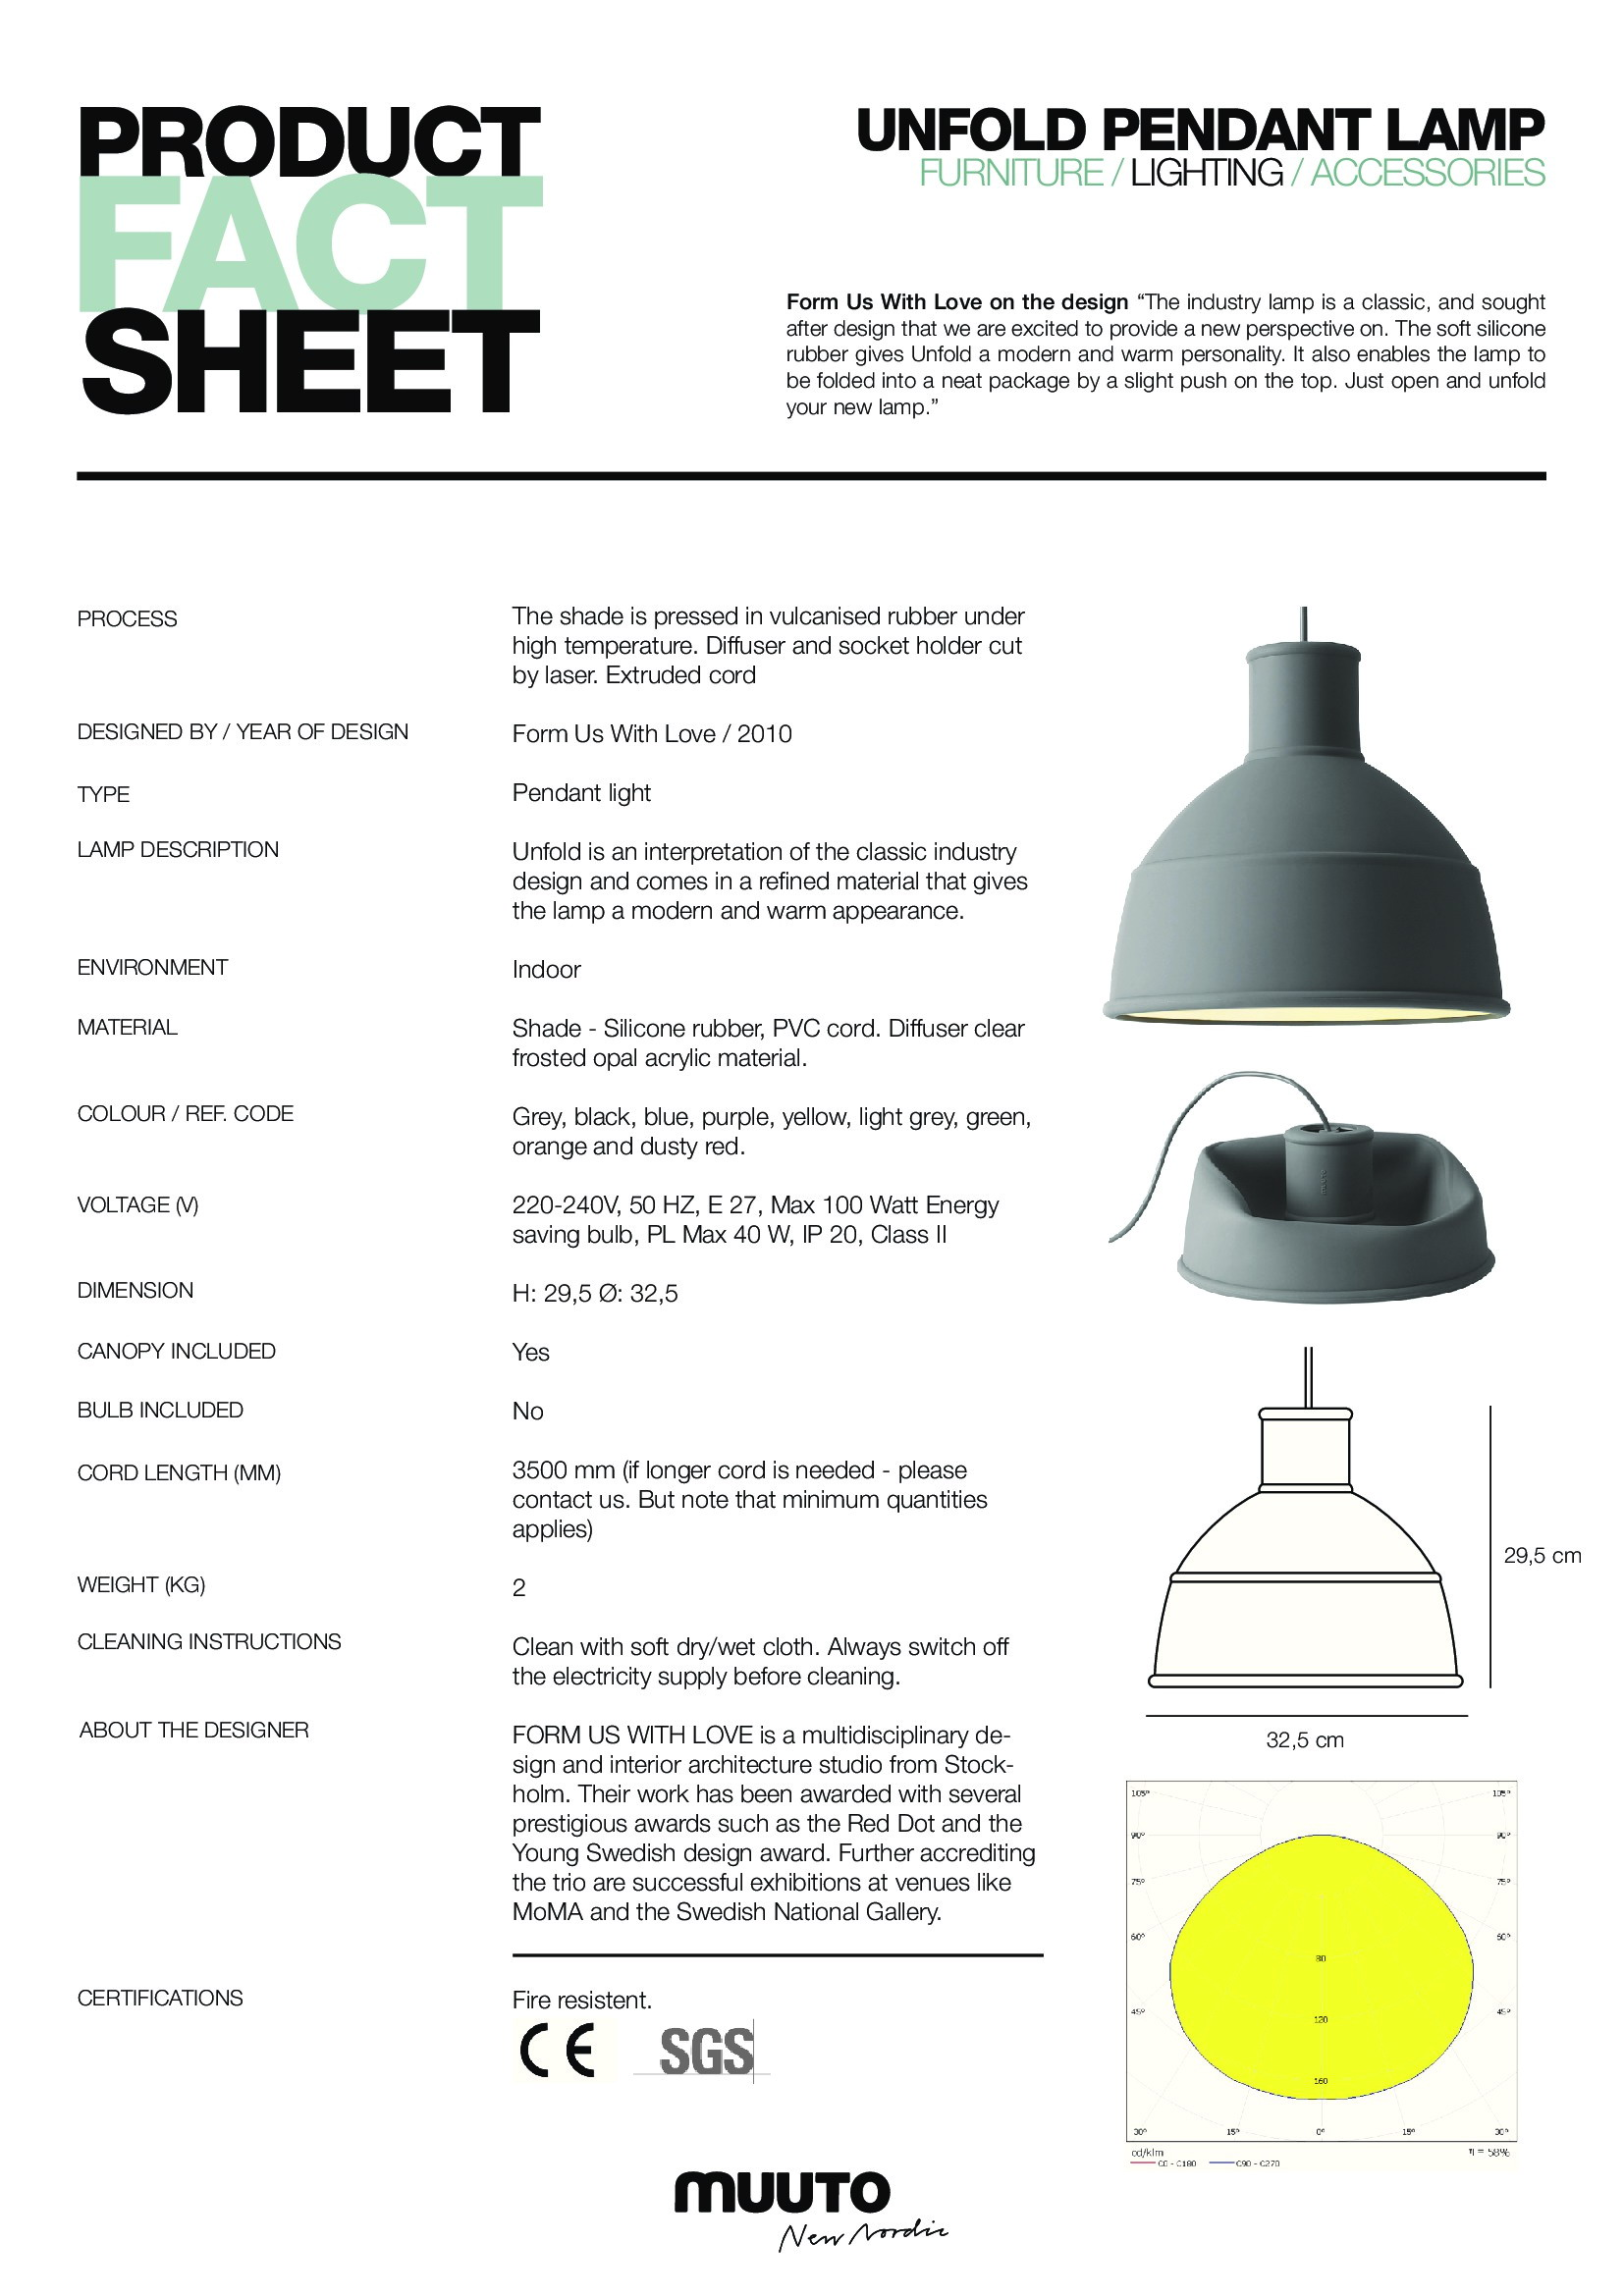 Muuto unfold pendant light funktion alley click here to open fact sheet mozeypictures Images